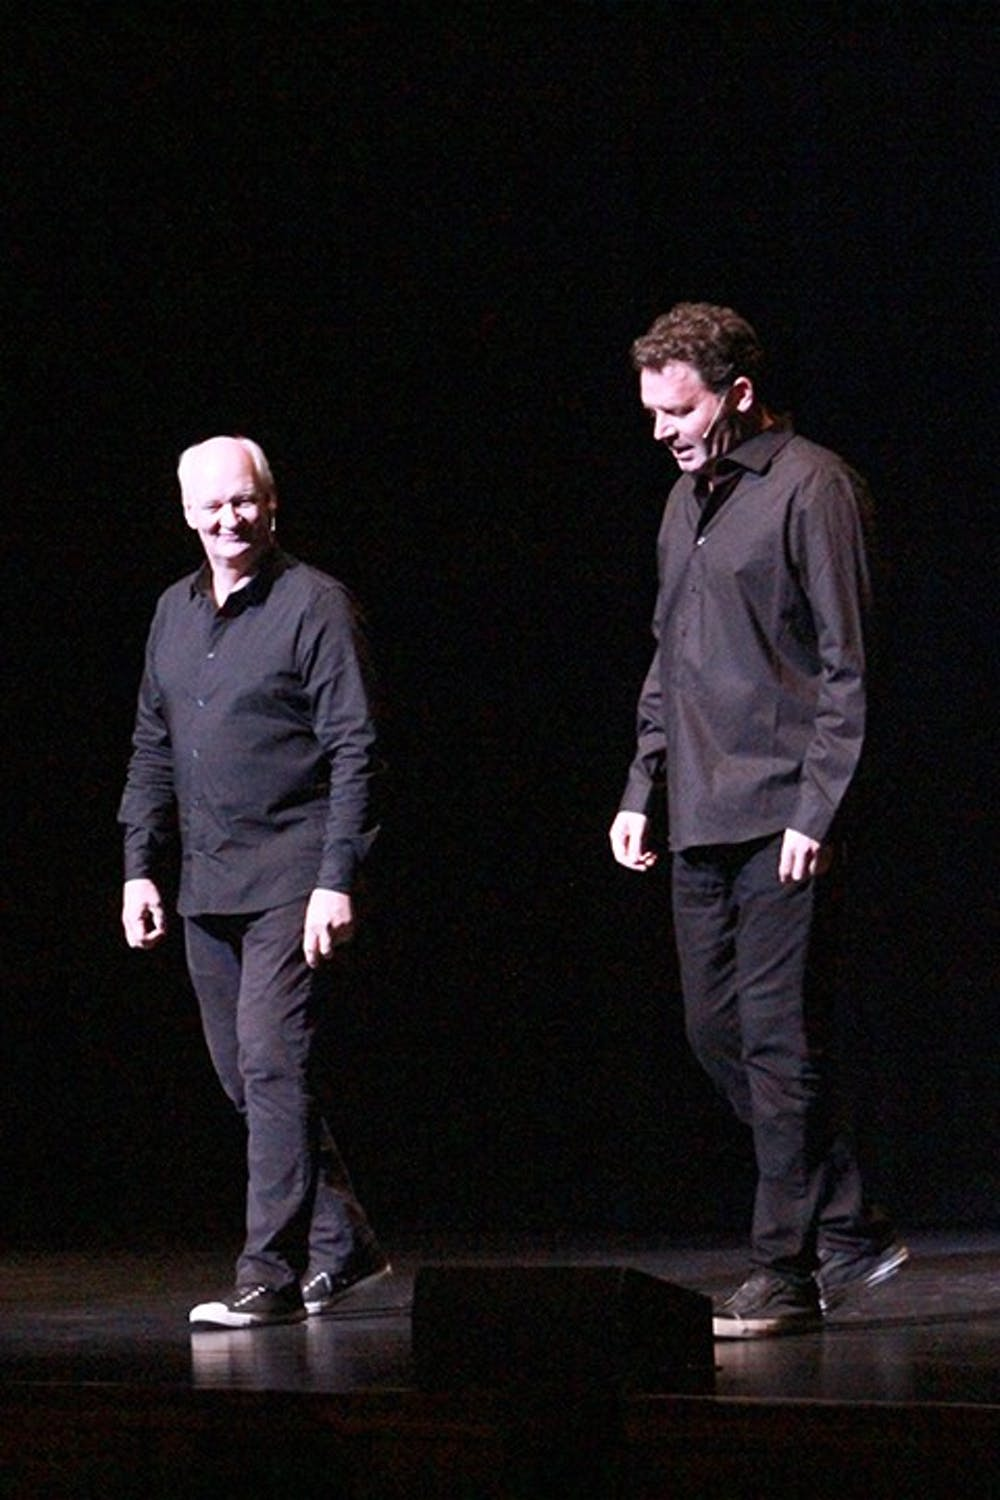 Mochrie and Sherwood: 'Let's make up some crap!' in improv comedy routine